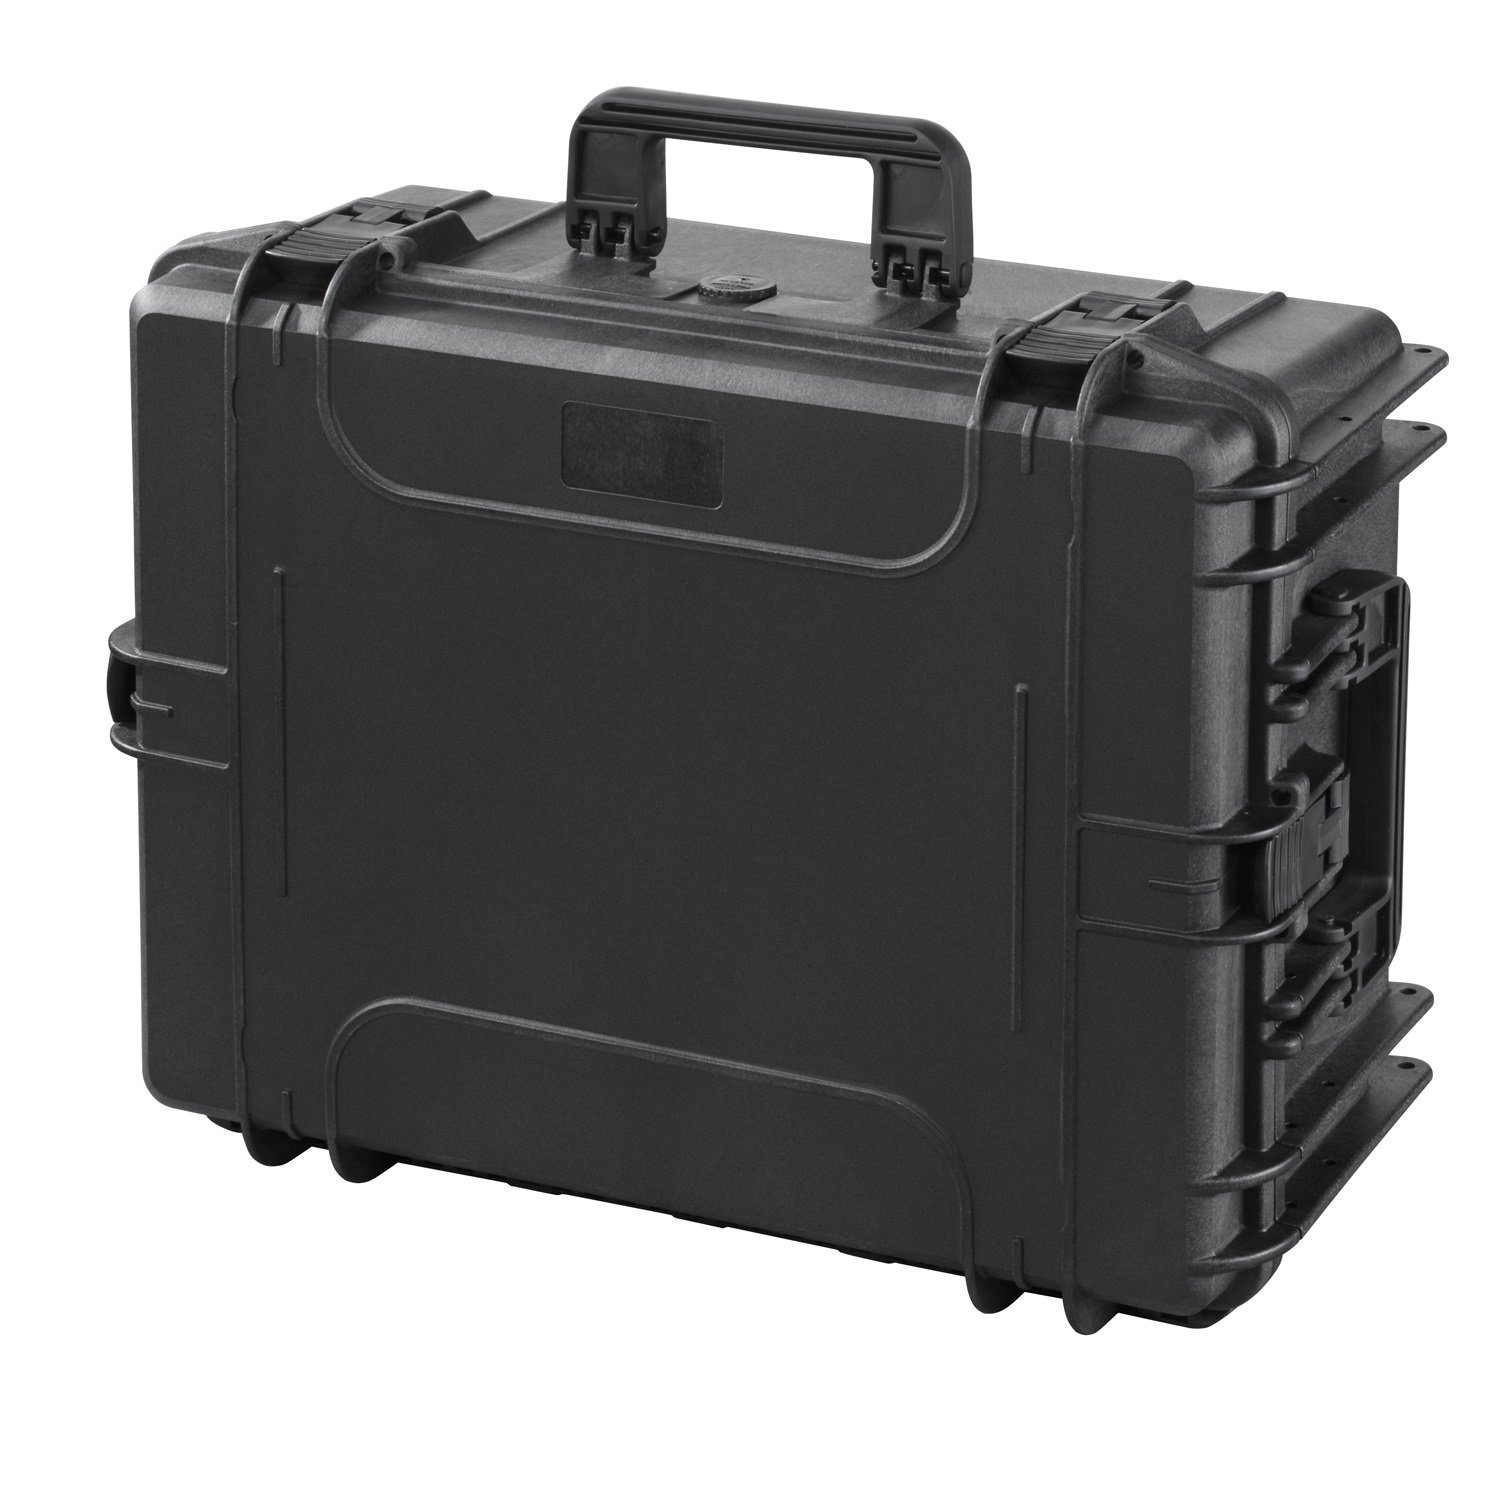 MAX Cases IP67 Cert Waterproof & Dustproof Case with Extendable Trolley Handle & Wheels, Black, MAX540H245STR